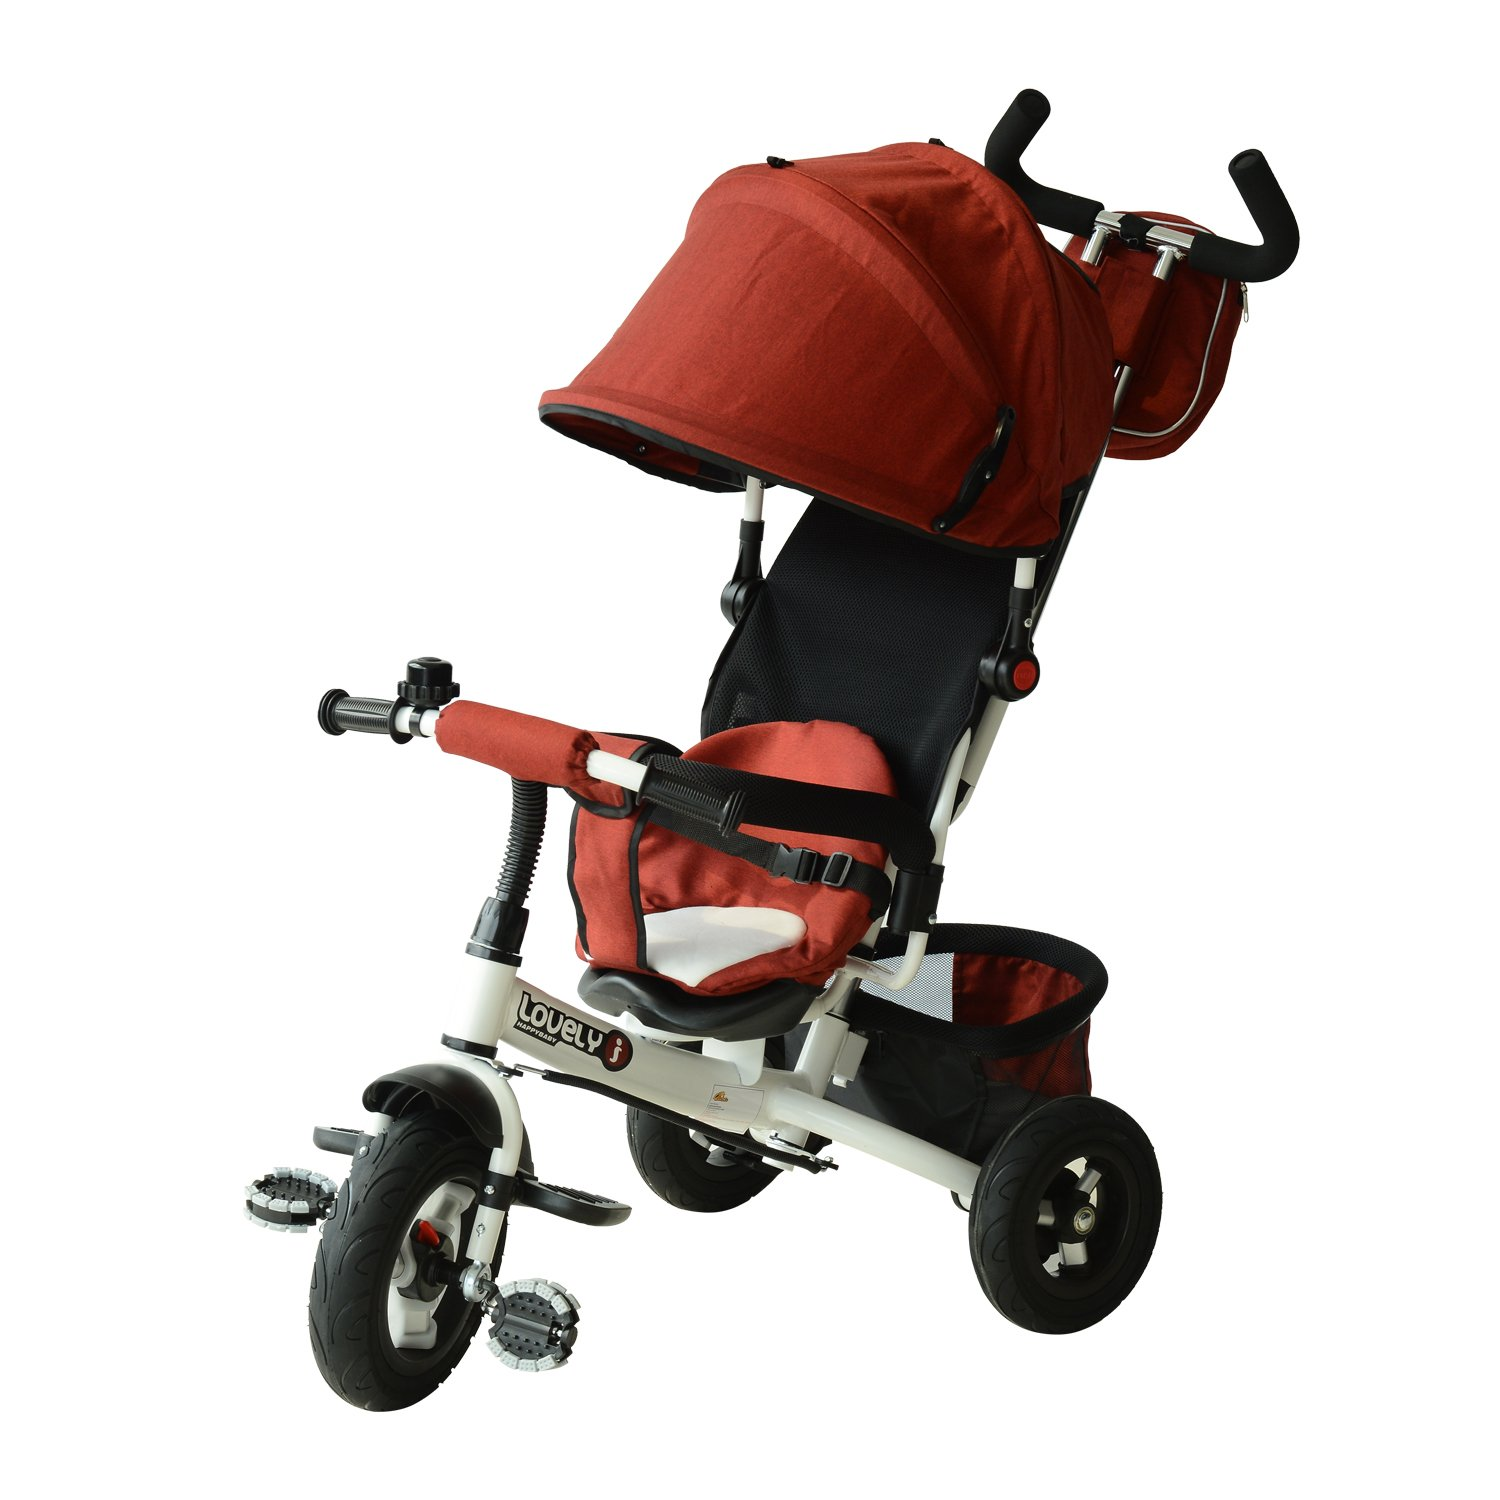 Qaba 2-in-1 Convertible Foldable Baby Tricycle Stroller - Blue 370-028BU